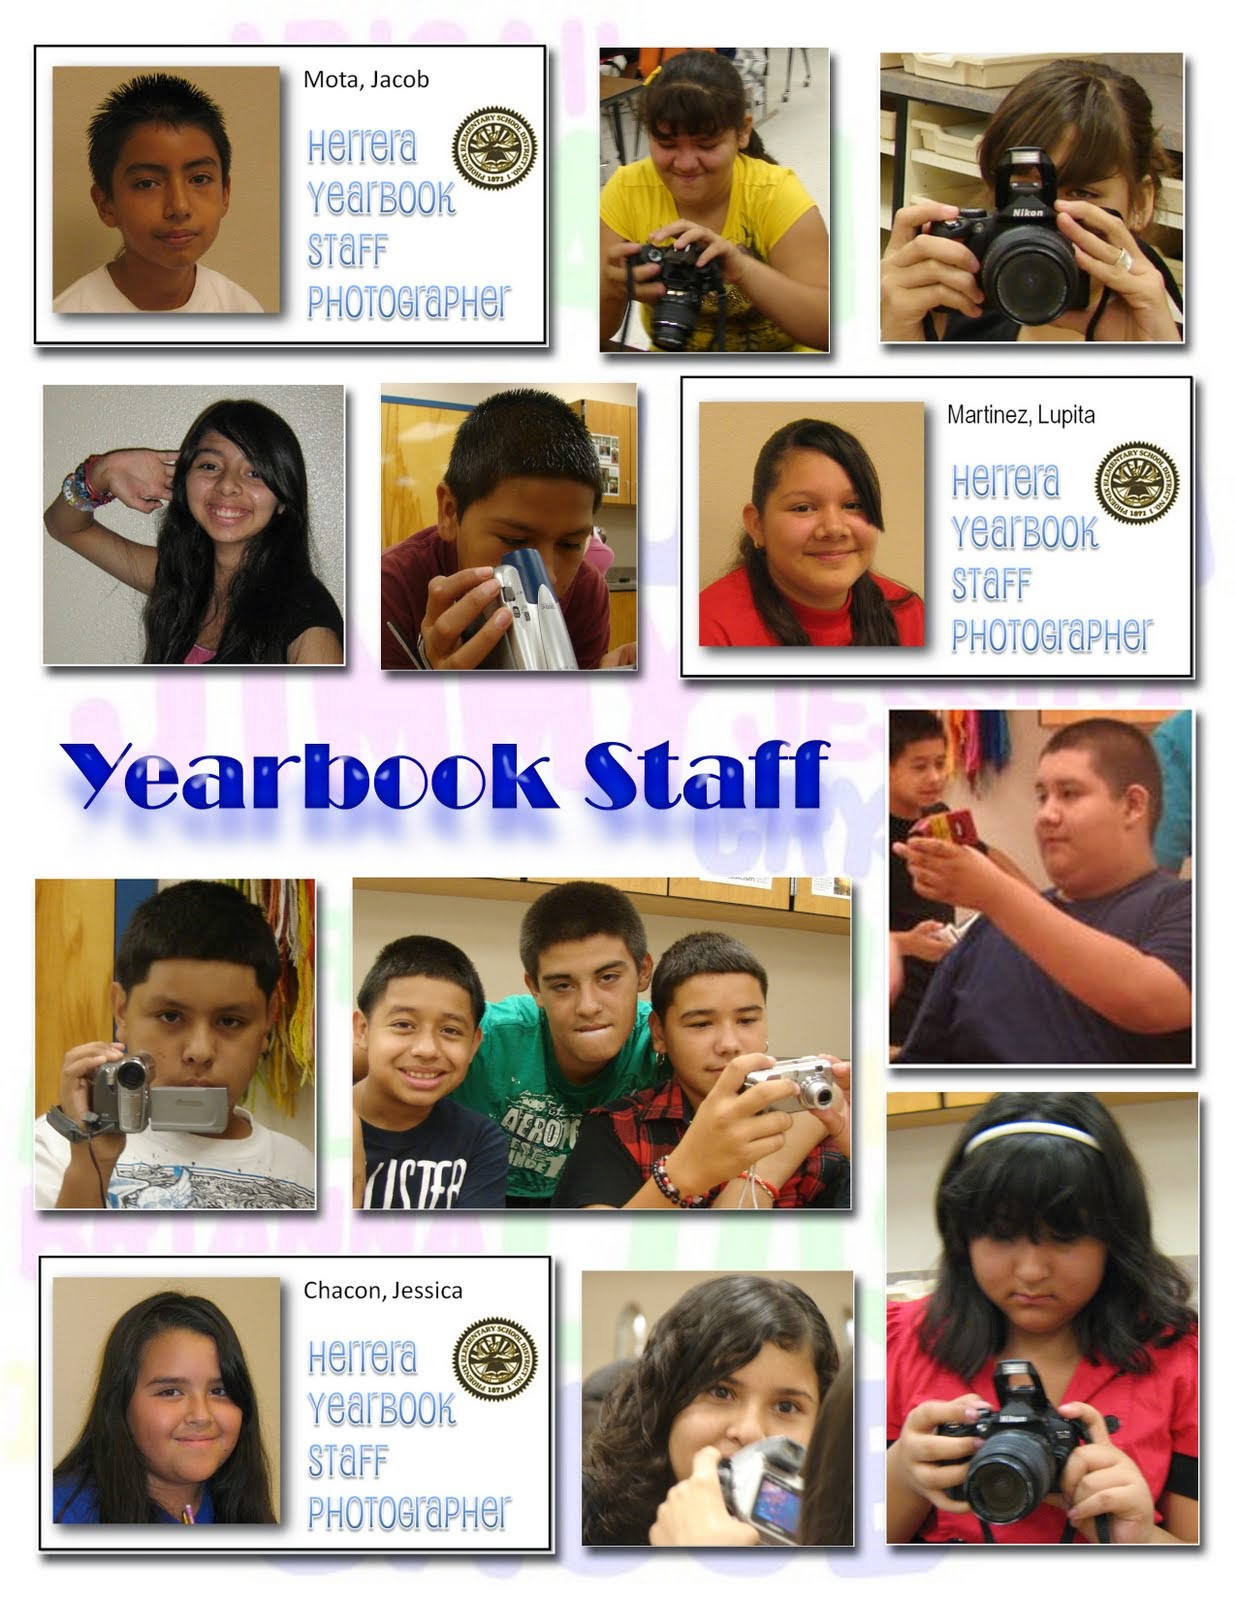 Yearbook Staff 2010-2011